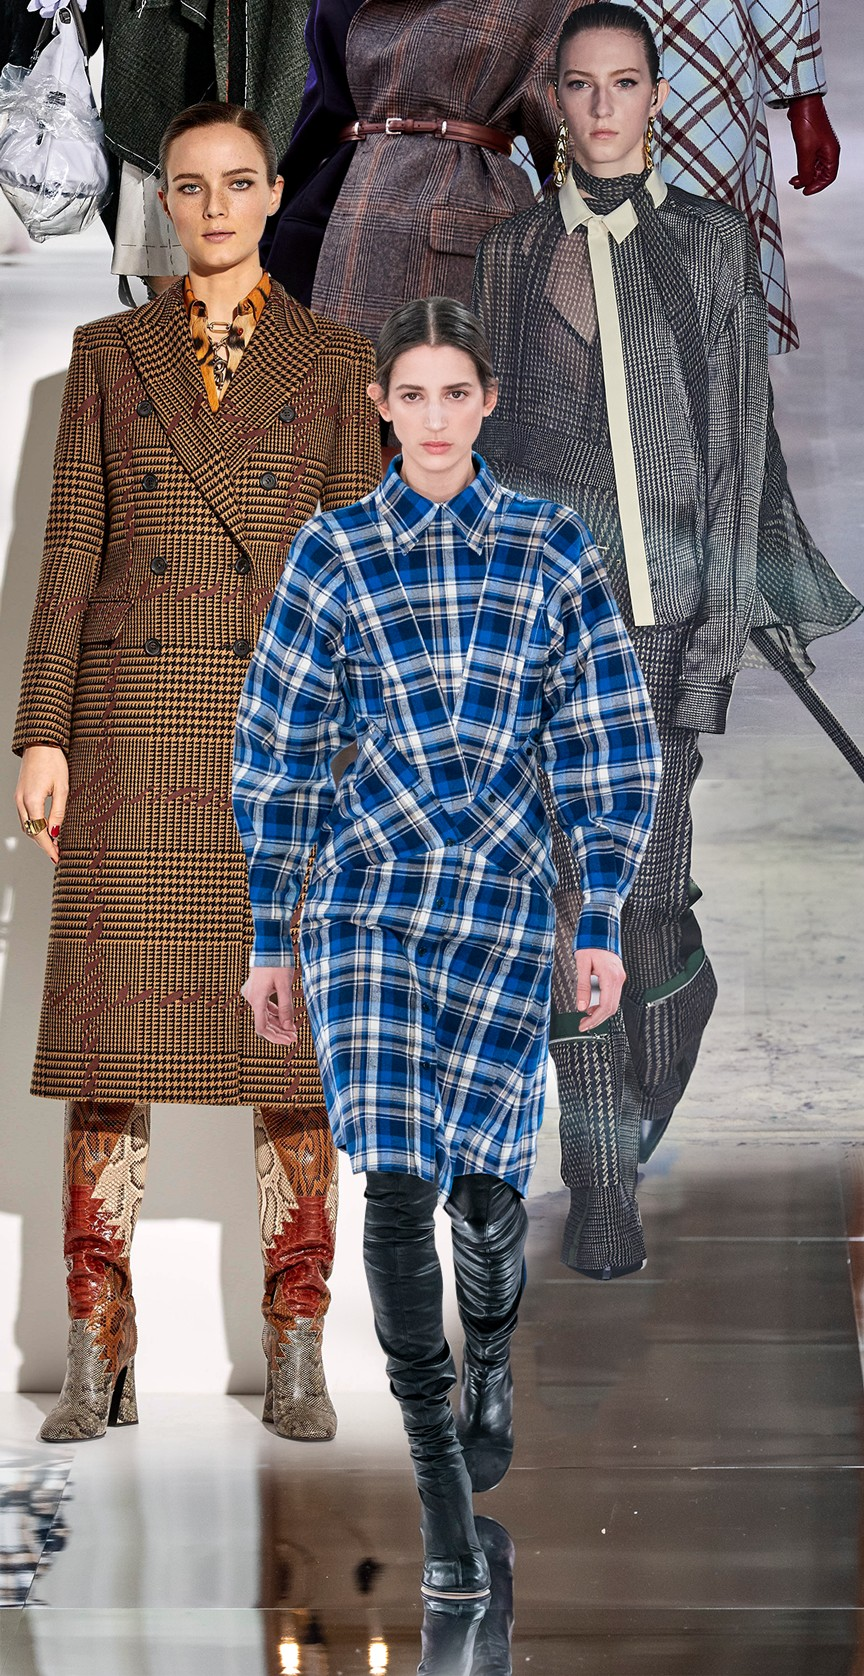 The Hottest And Most Coveted Fashion Trends From The Fall 2020 Runways (24) fashion trend The Hottest And Most Coveted Fashion Trends From The Fall 2020 Runways The Hottest And Most Coveted Fashion Trends From The Fall 2020 Runways 24